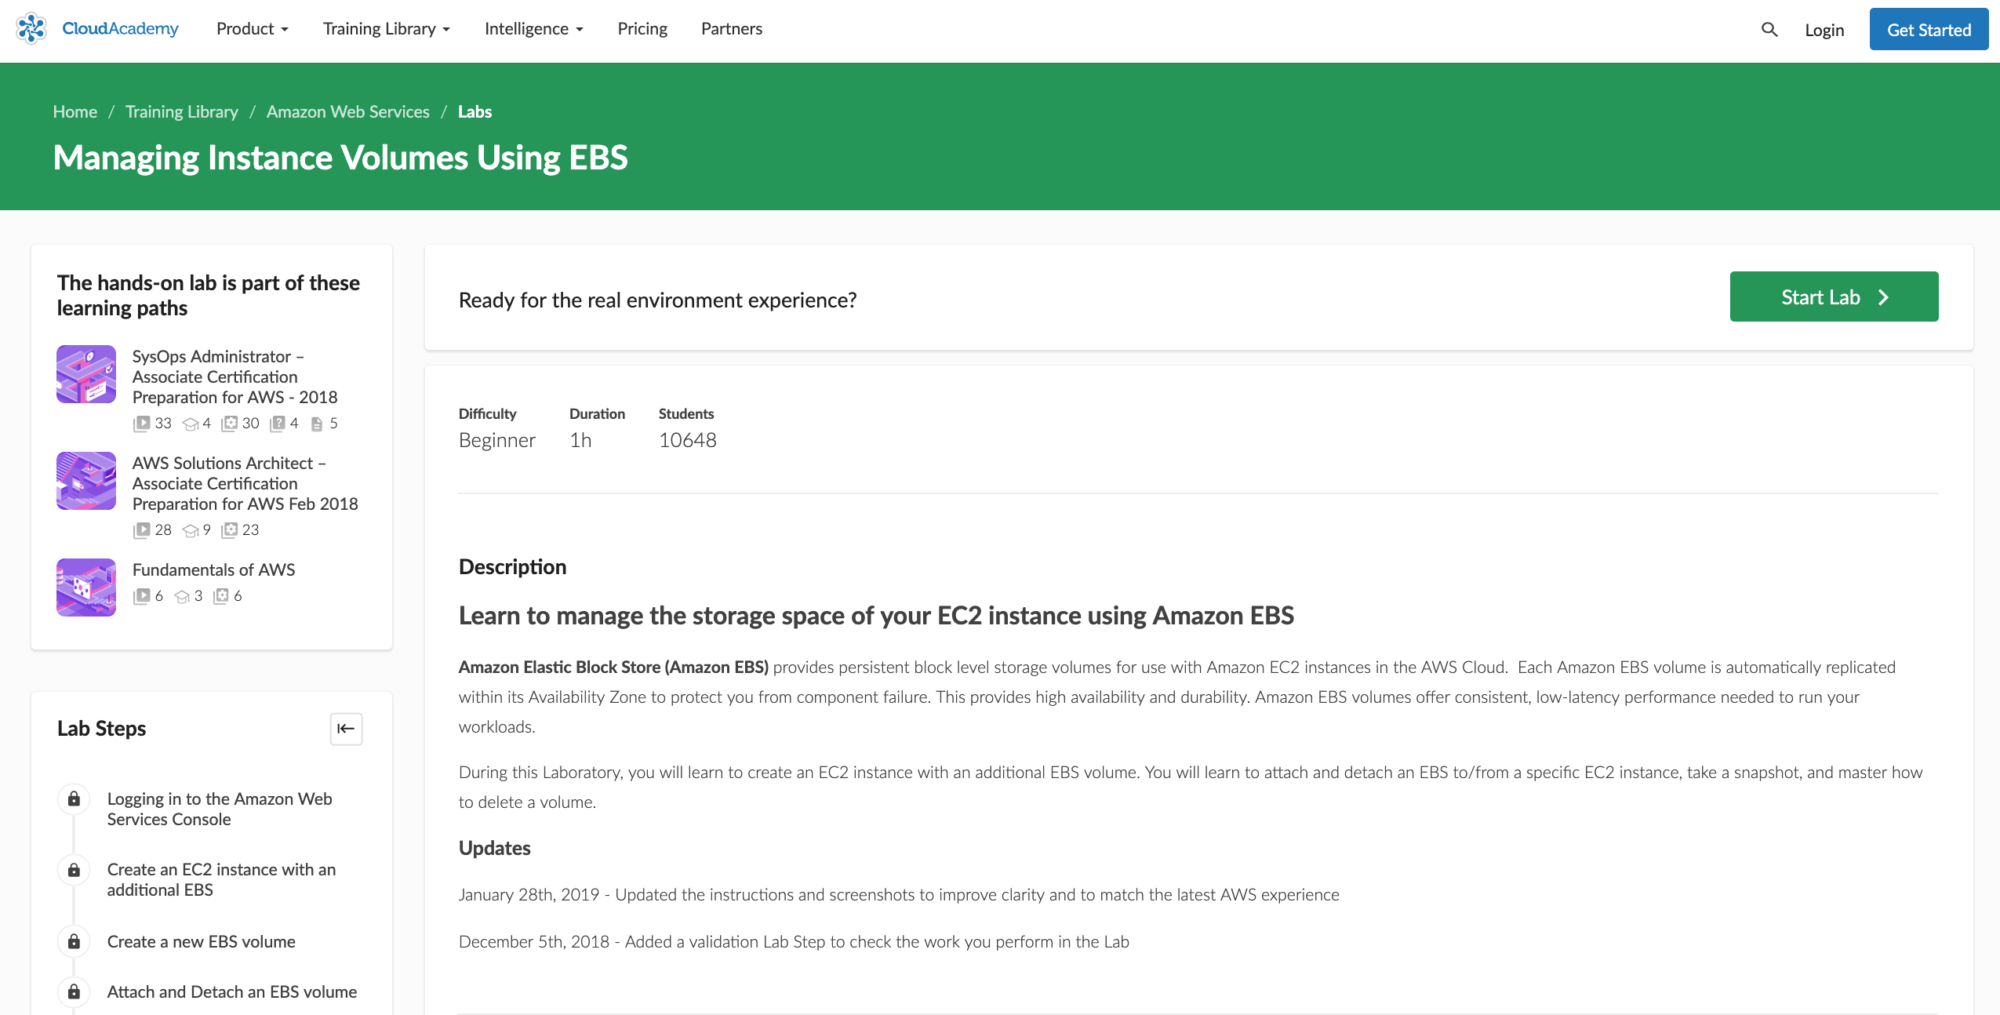 Managing Instance Volumes Using EBS